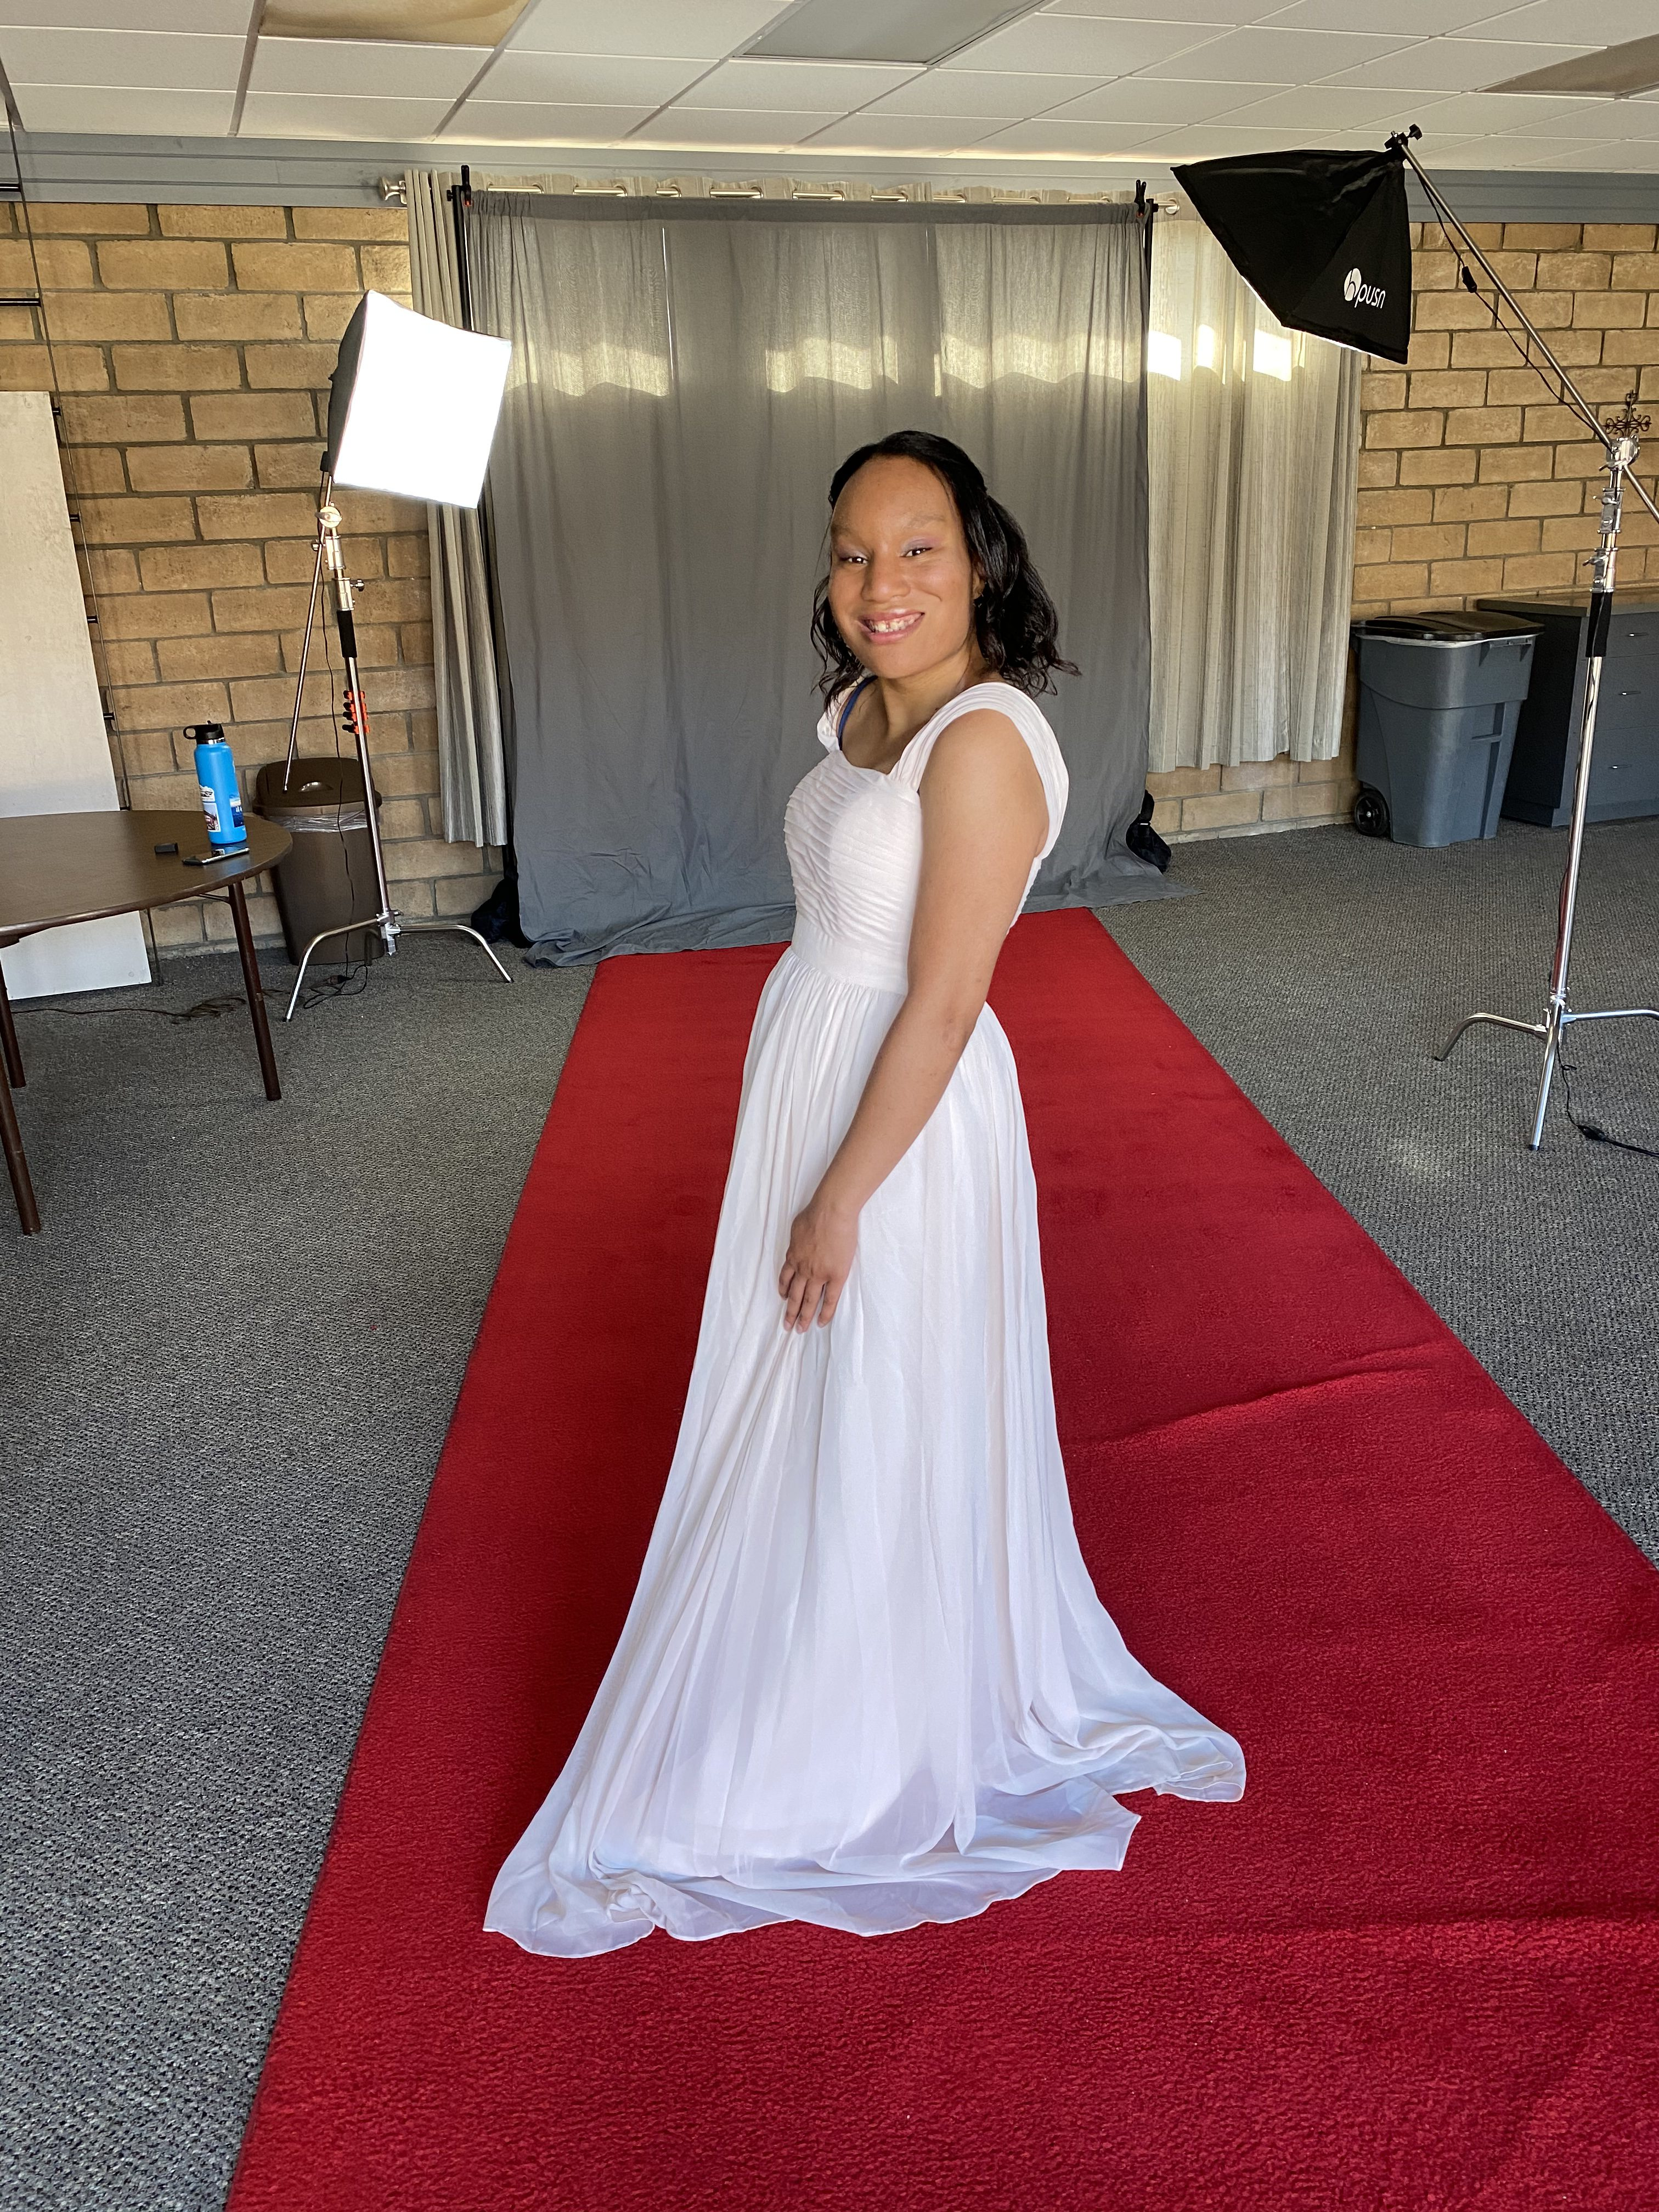 Saida Mahoney, a rare disease advocate, wearing a white dress and smiling for a photo on a red carpet with a gray curtain in the background for the California Miss Amazing pageant.